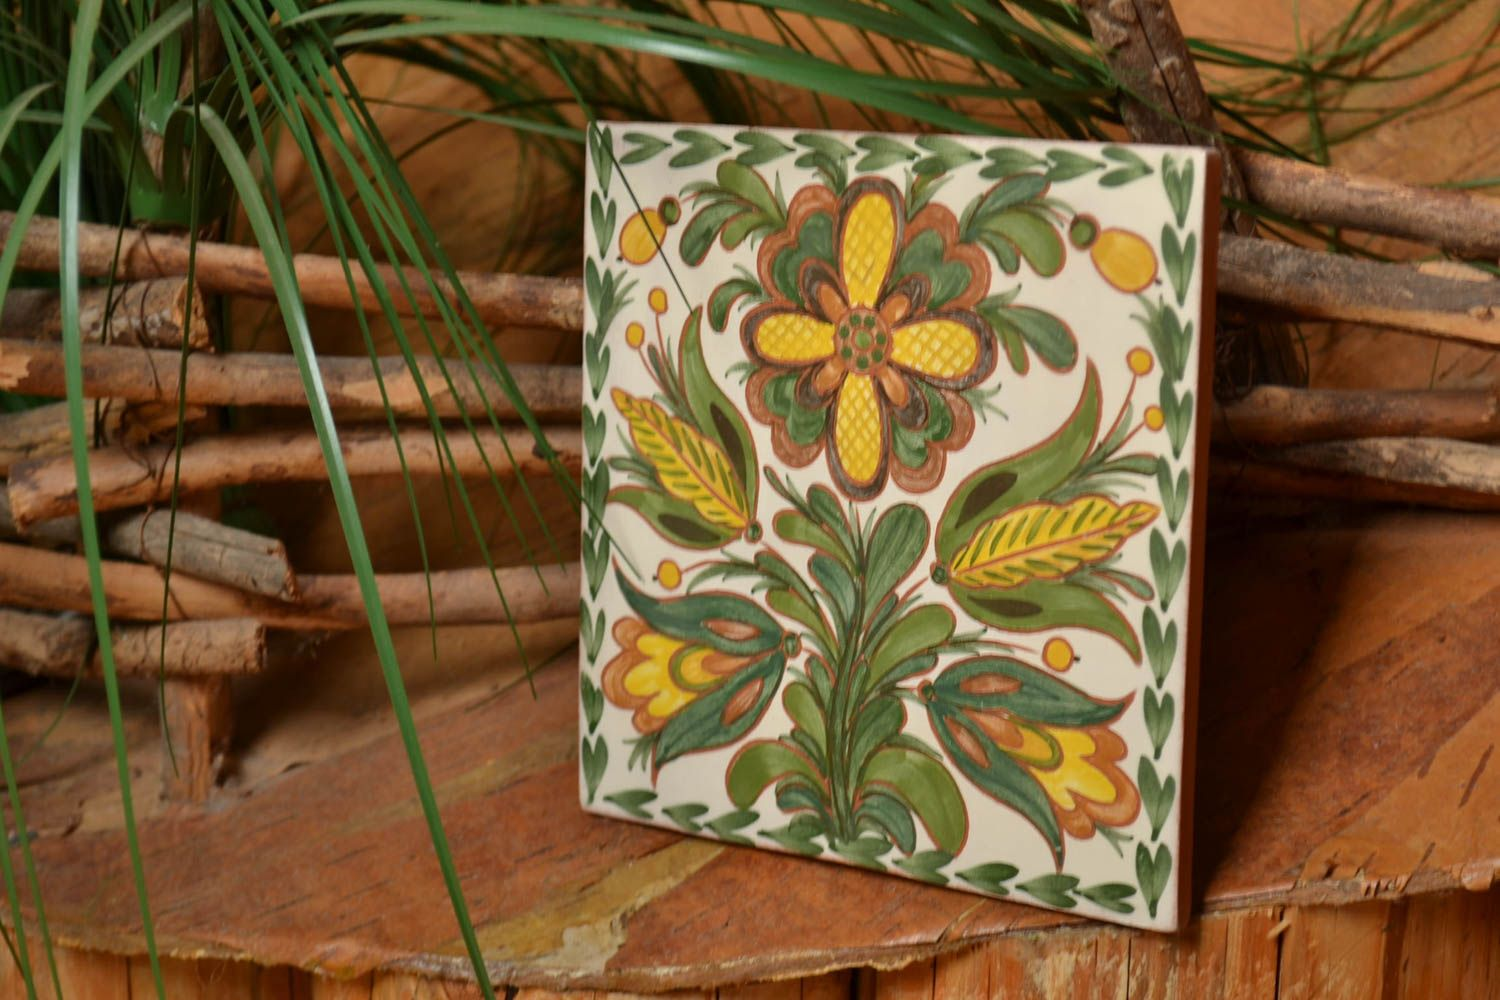 decorative handmade tiles Handmade designer ceramic facing panel with green and yellow floral ornament  - MADEheart.com